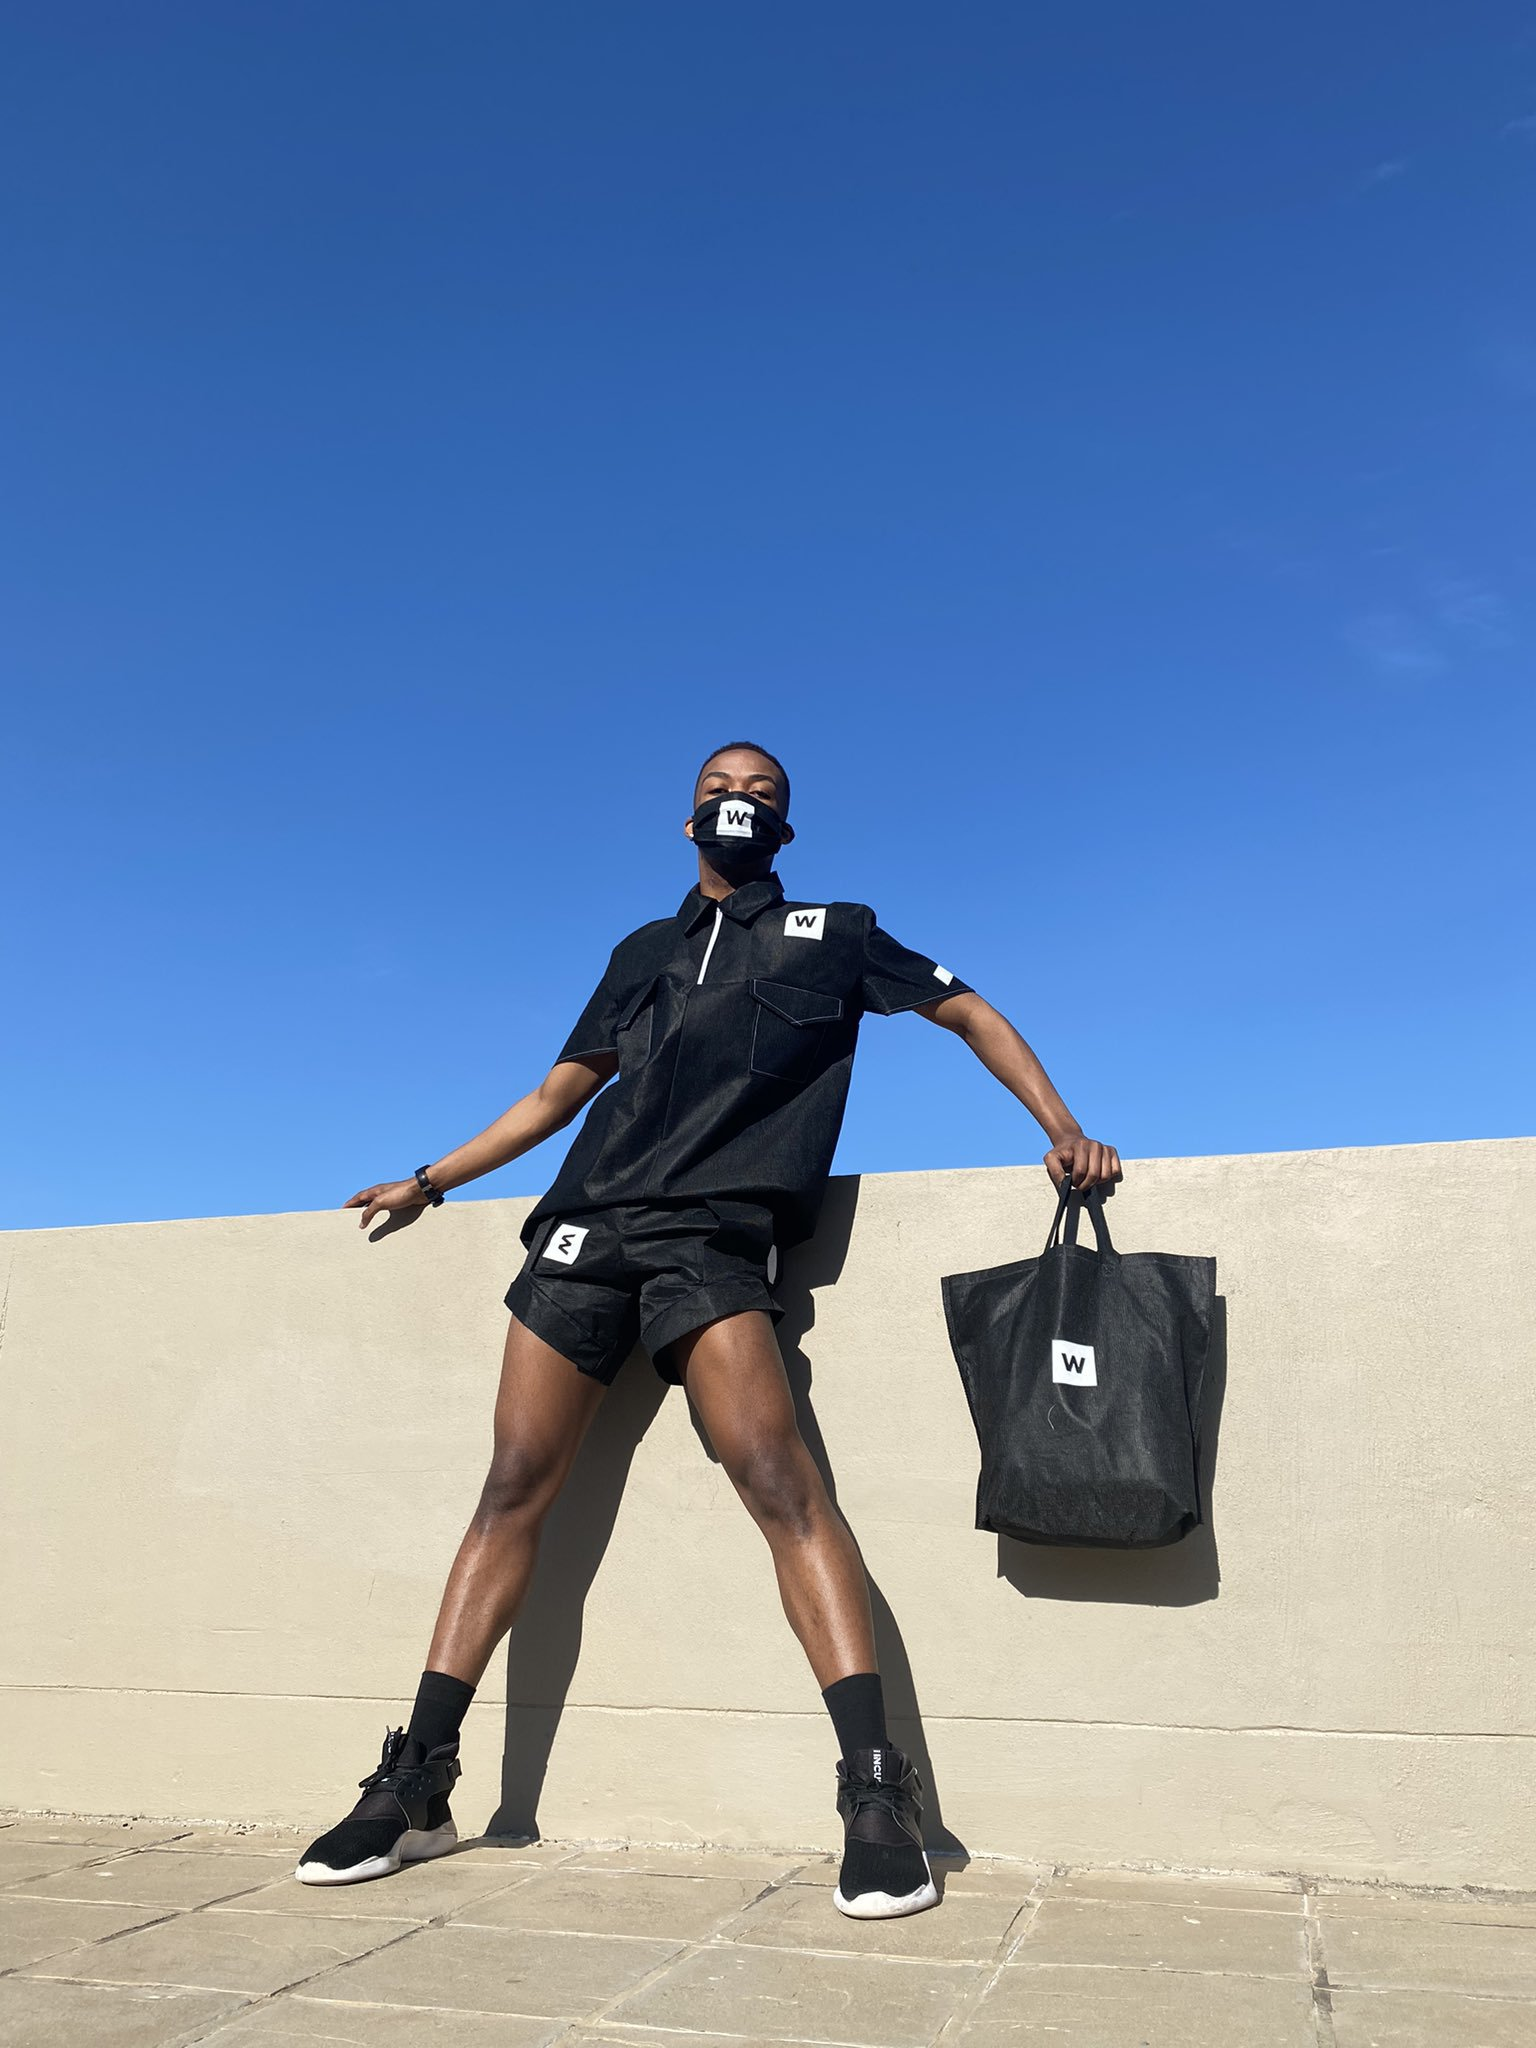 Bhungane Mehlomakhulu creates outfit using Woolworths bags